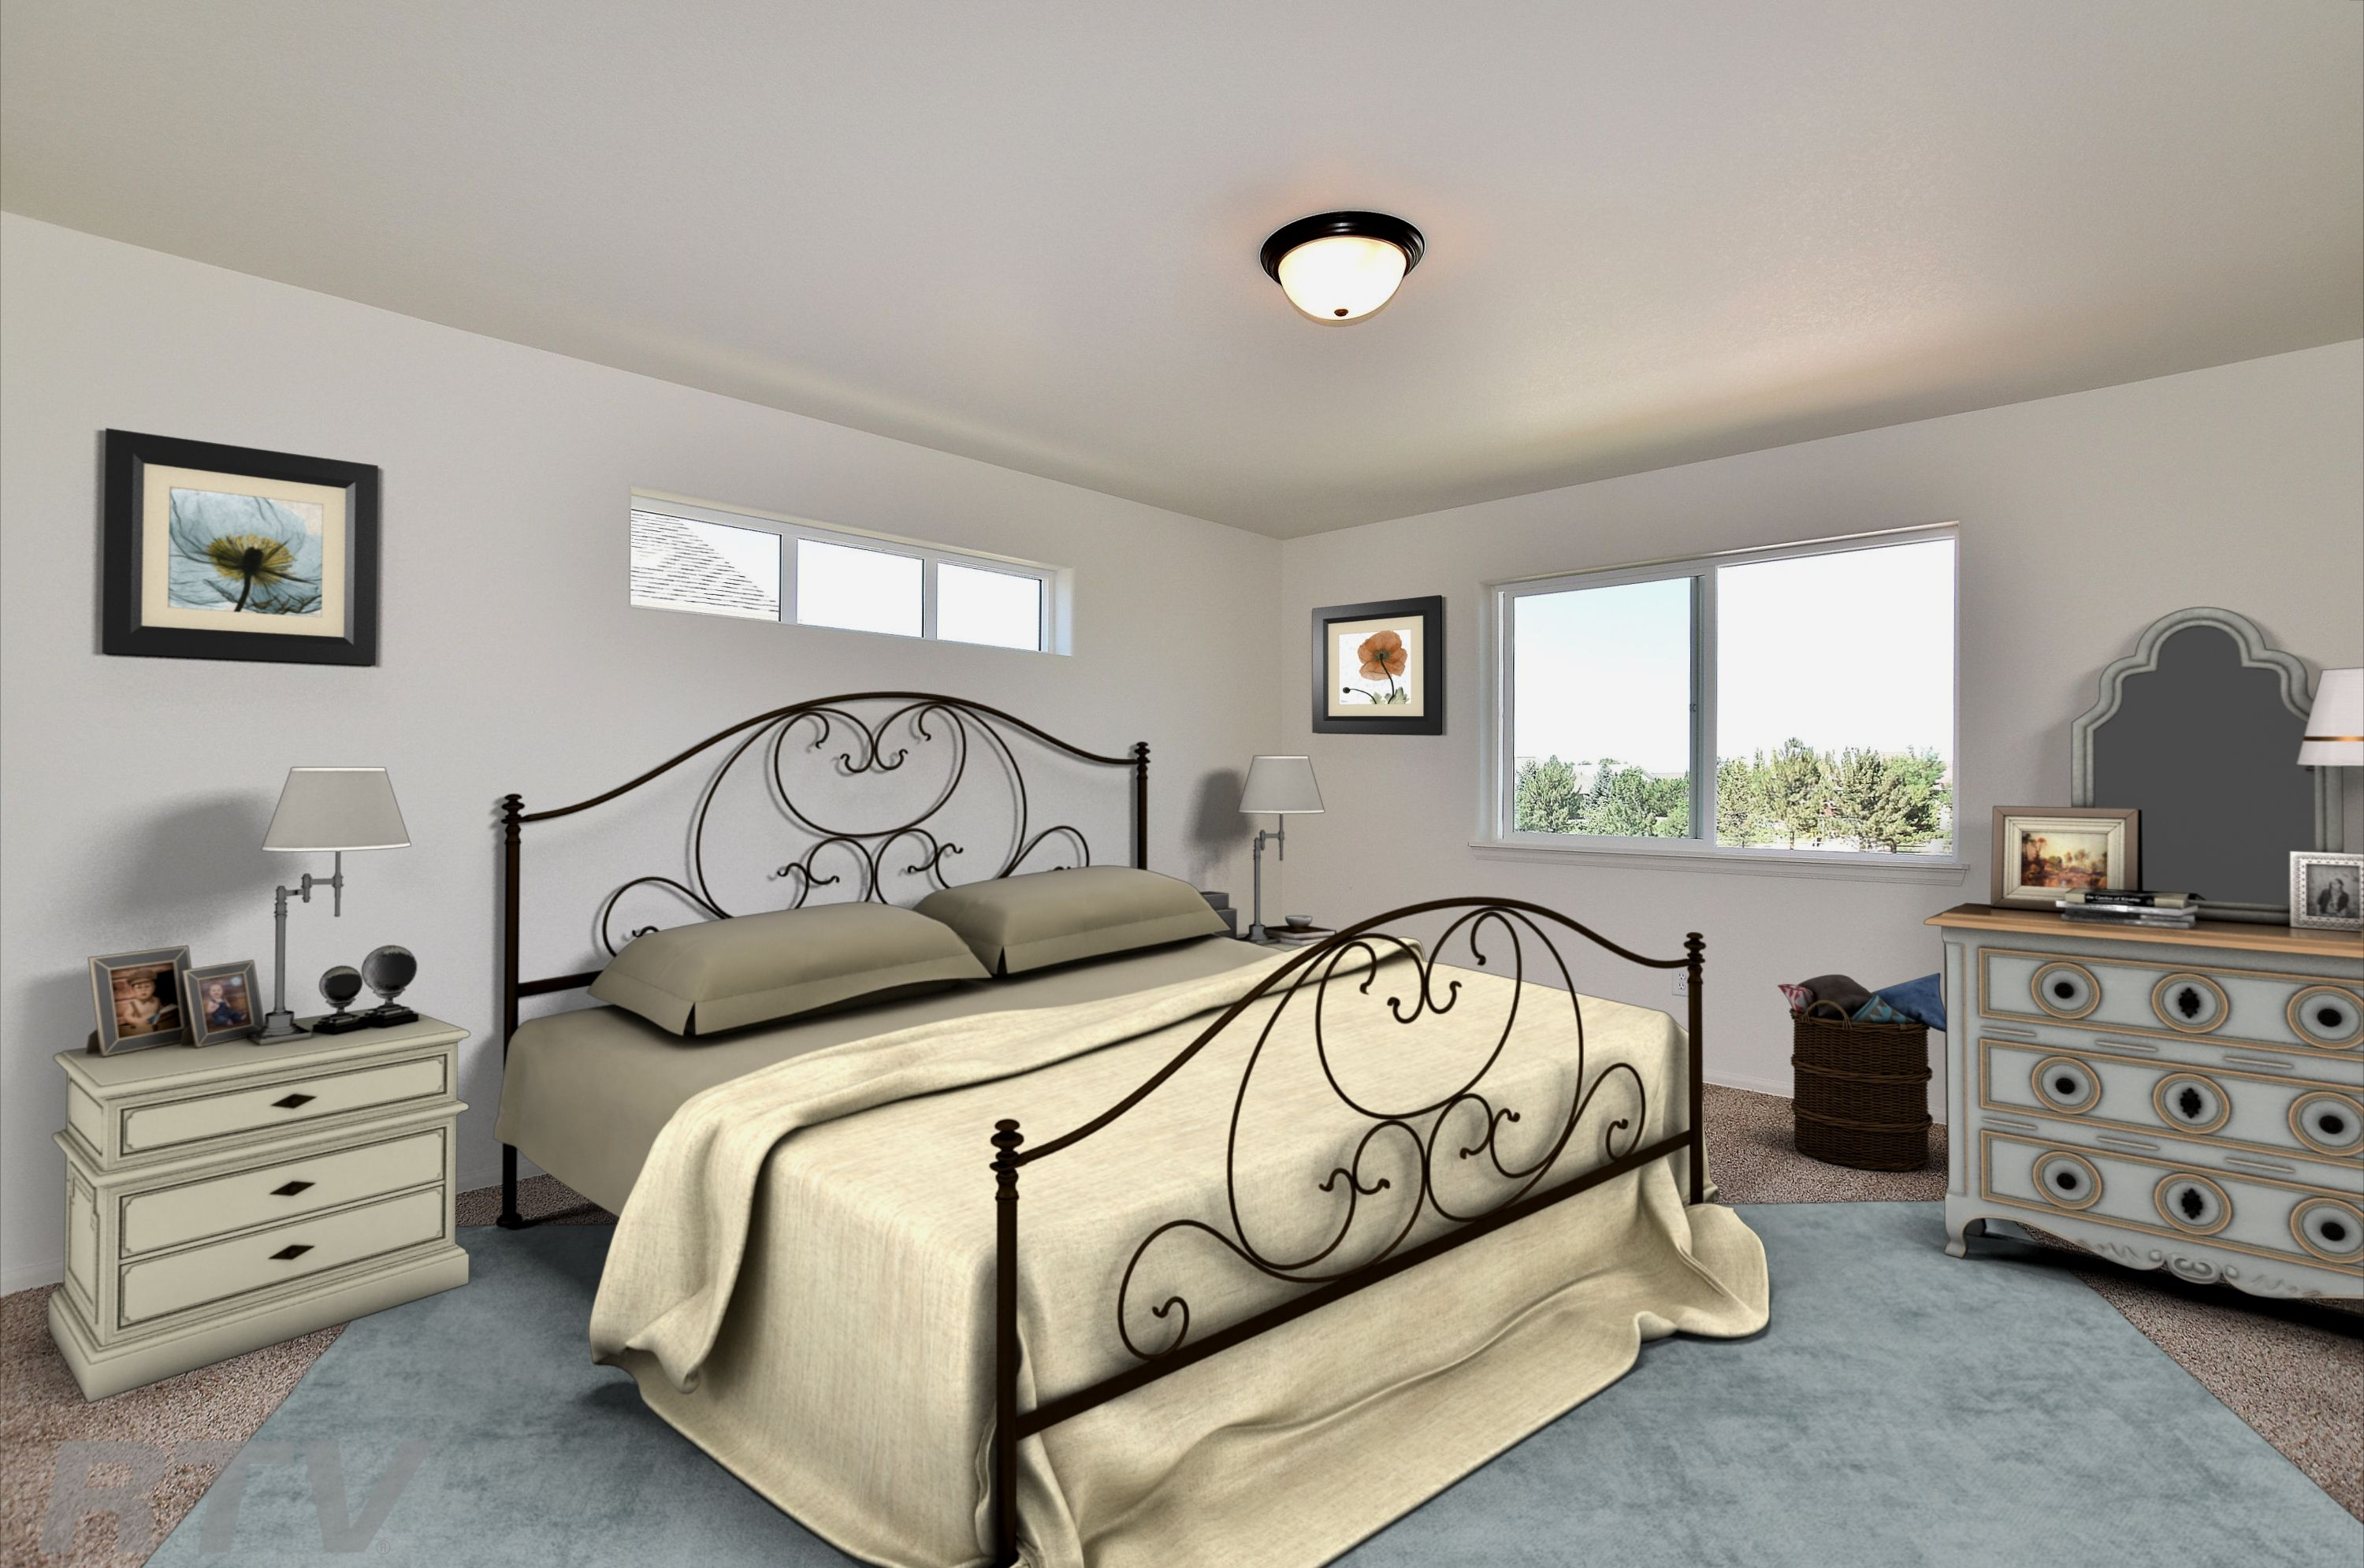 Bedroom featured in the California By Journey Homes in Greeley, CO